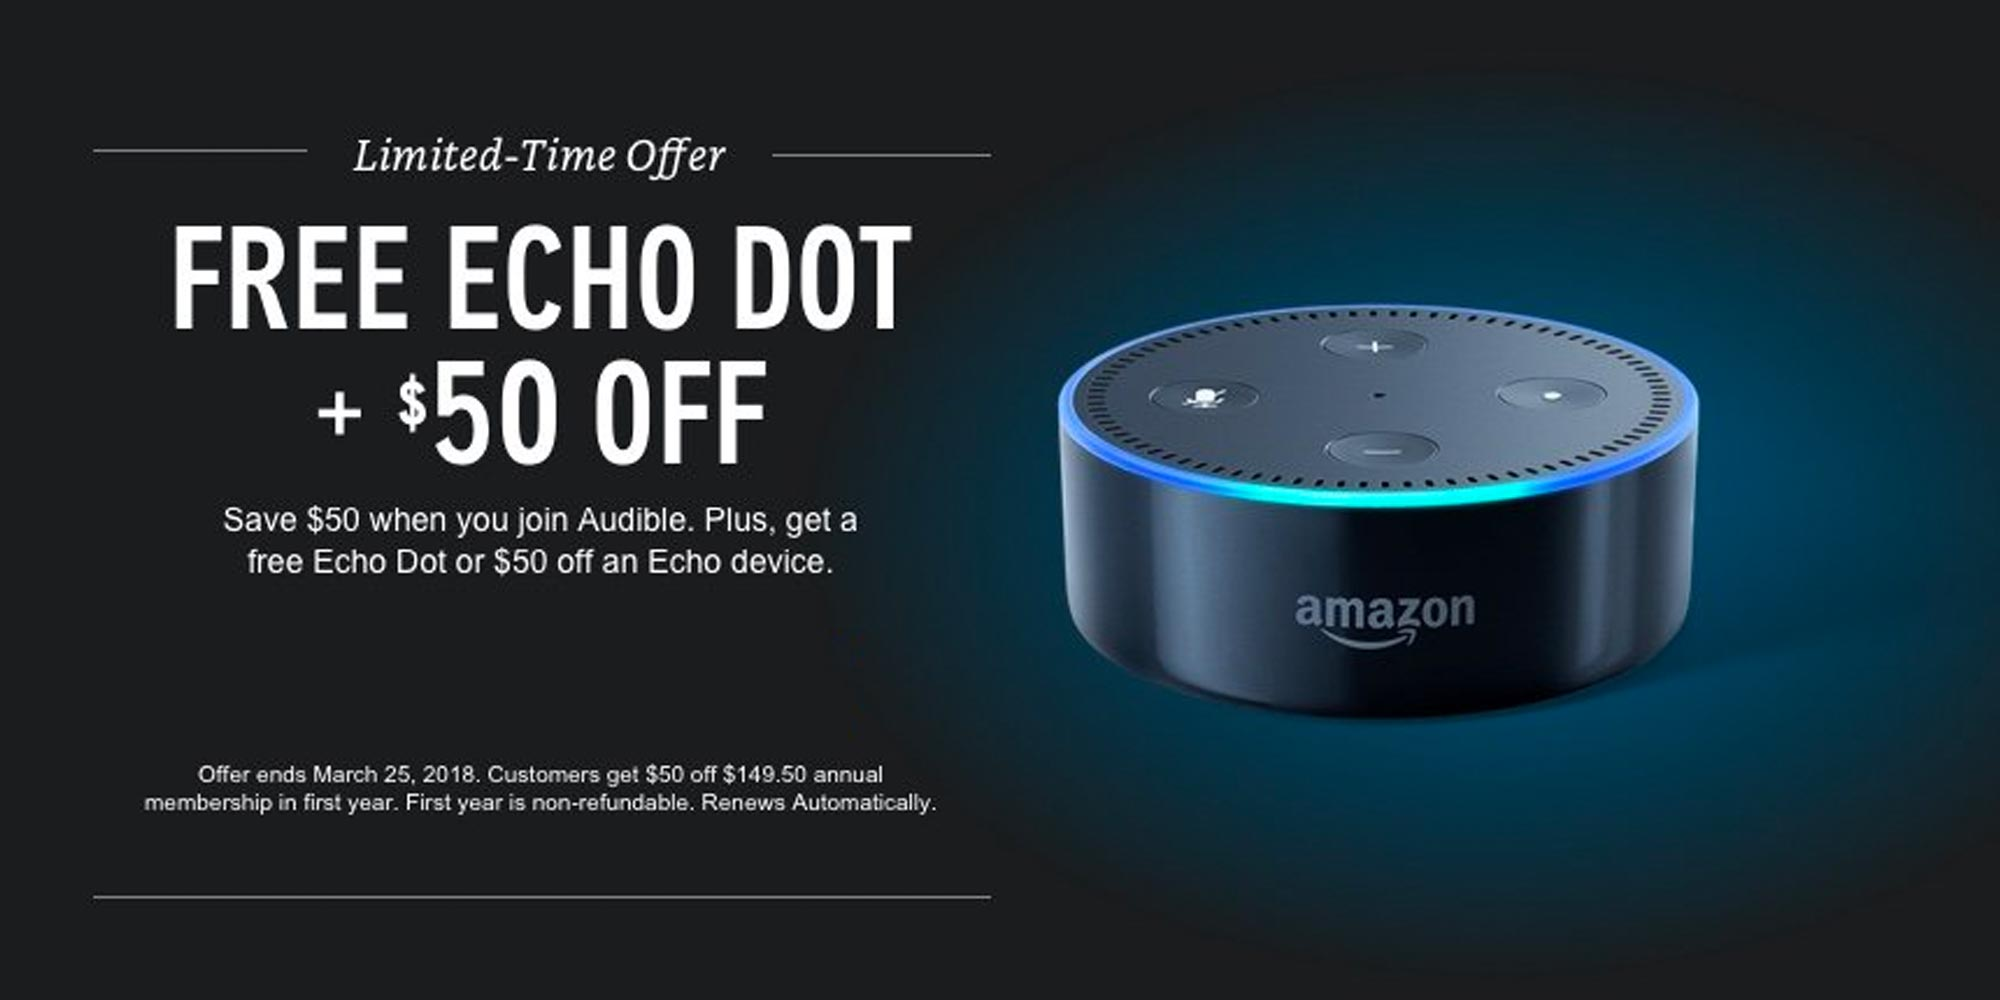 Amazon Audible Cancel Membership Get 12 Audio Books On Audible Free Echo Dot For Just 100 200